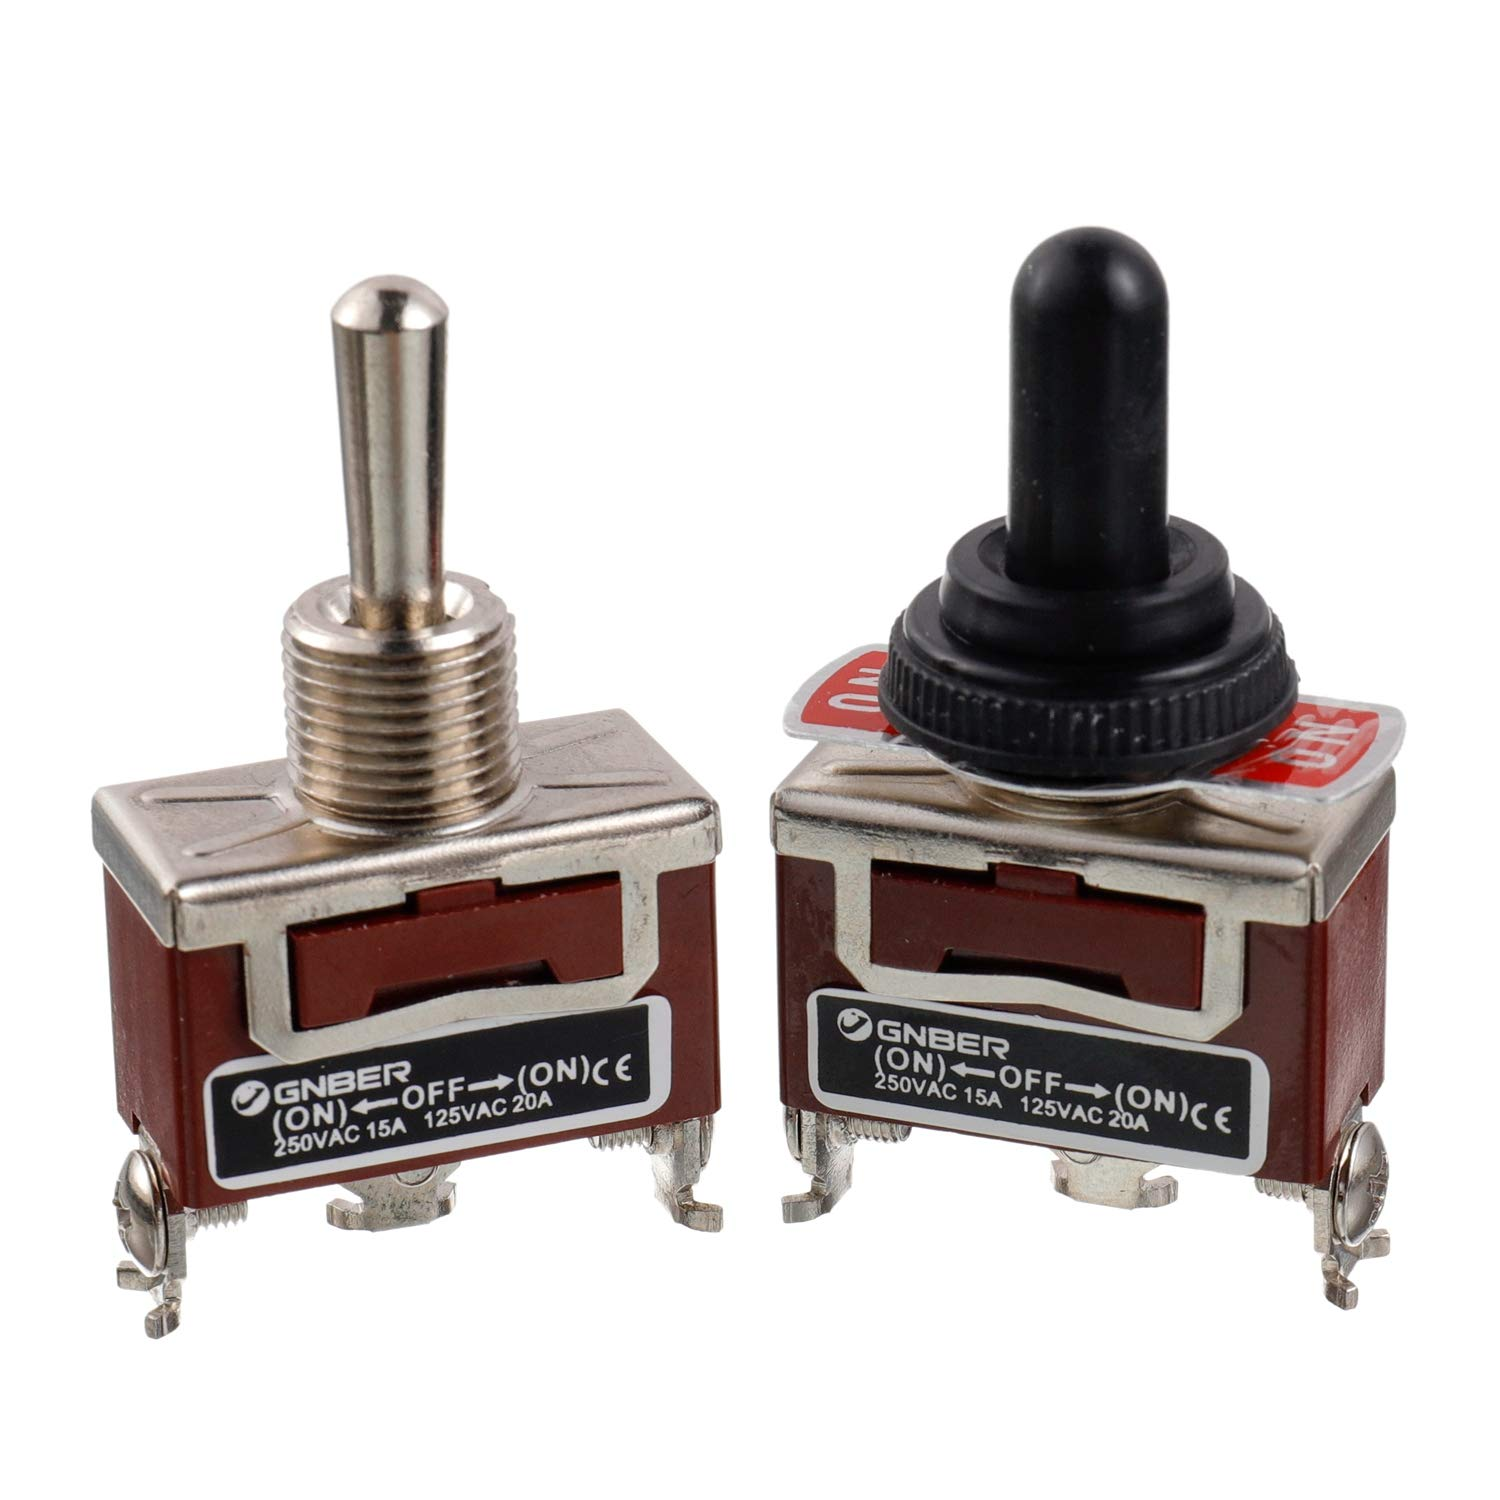 2PCS 6PIN ON-OFF-ON Toggle Switch 15A Screw Termianls MOMENTARY  water proof